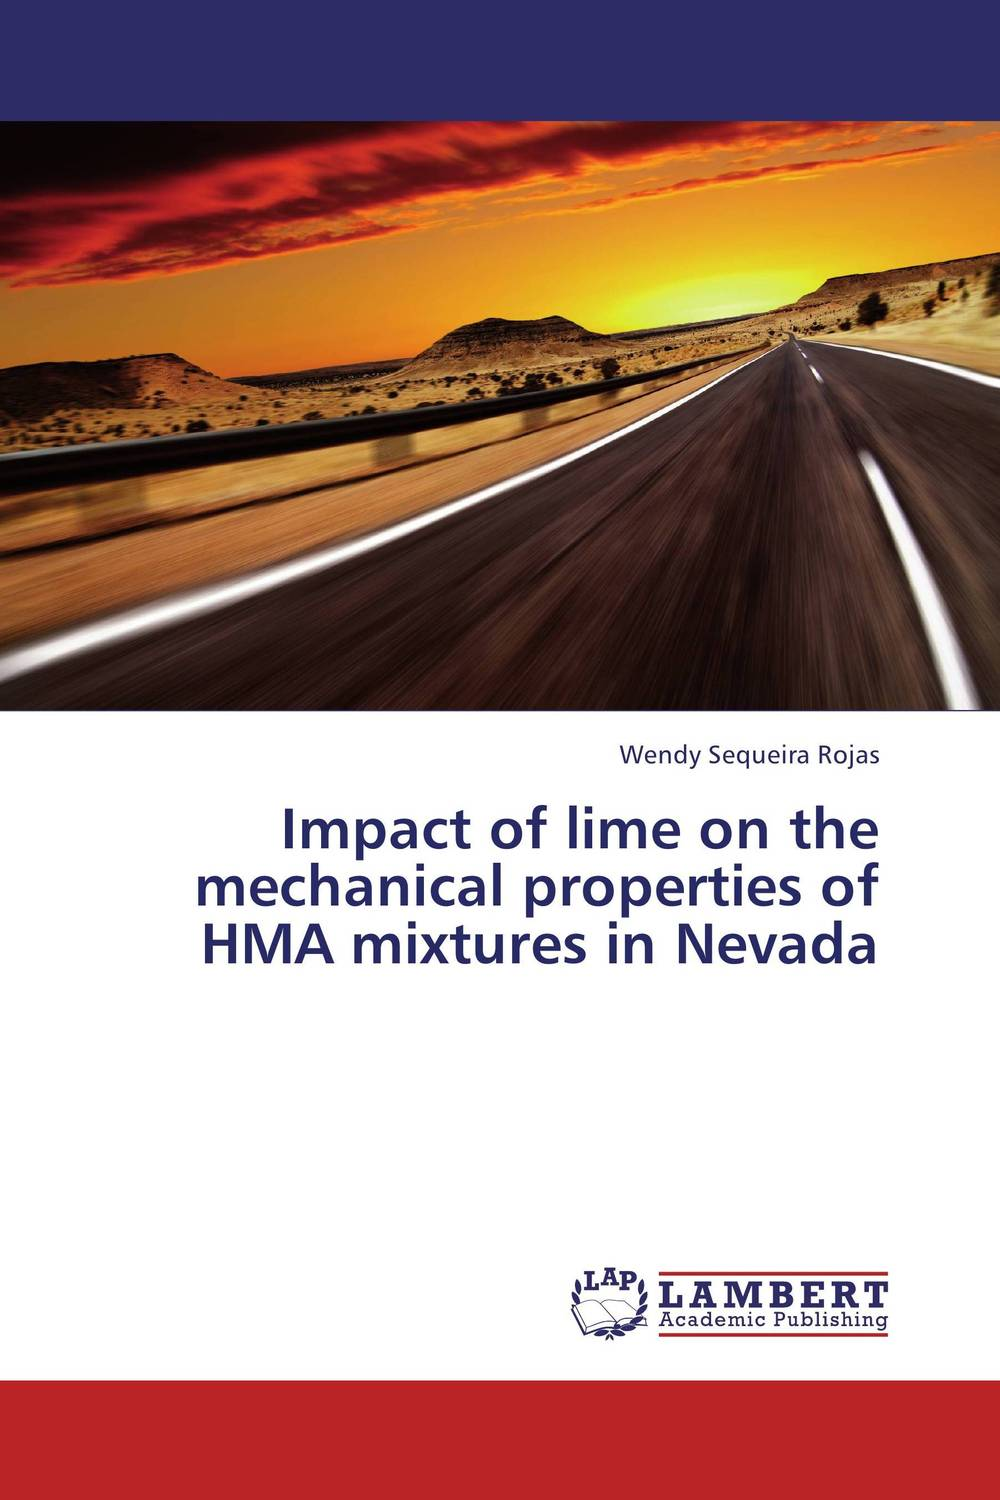 Impact of lime on the mechanical properties of HMA mixtures in Nevada